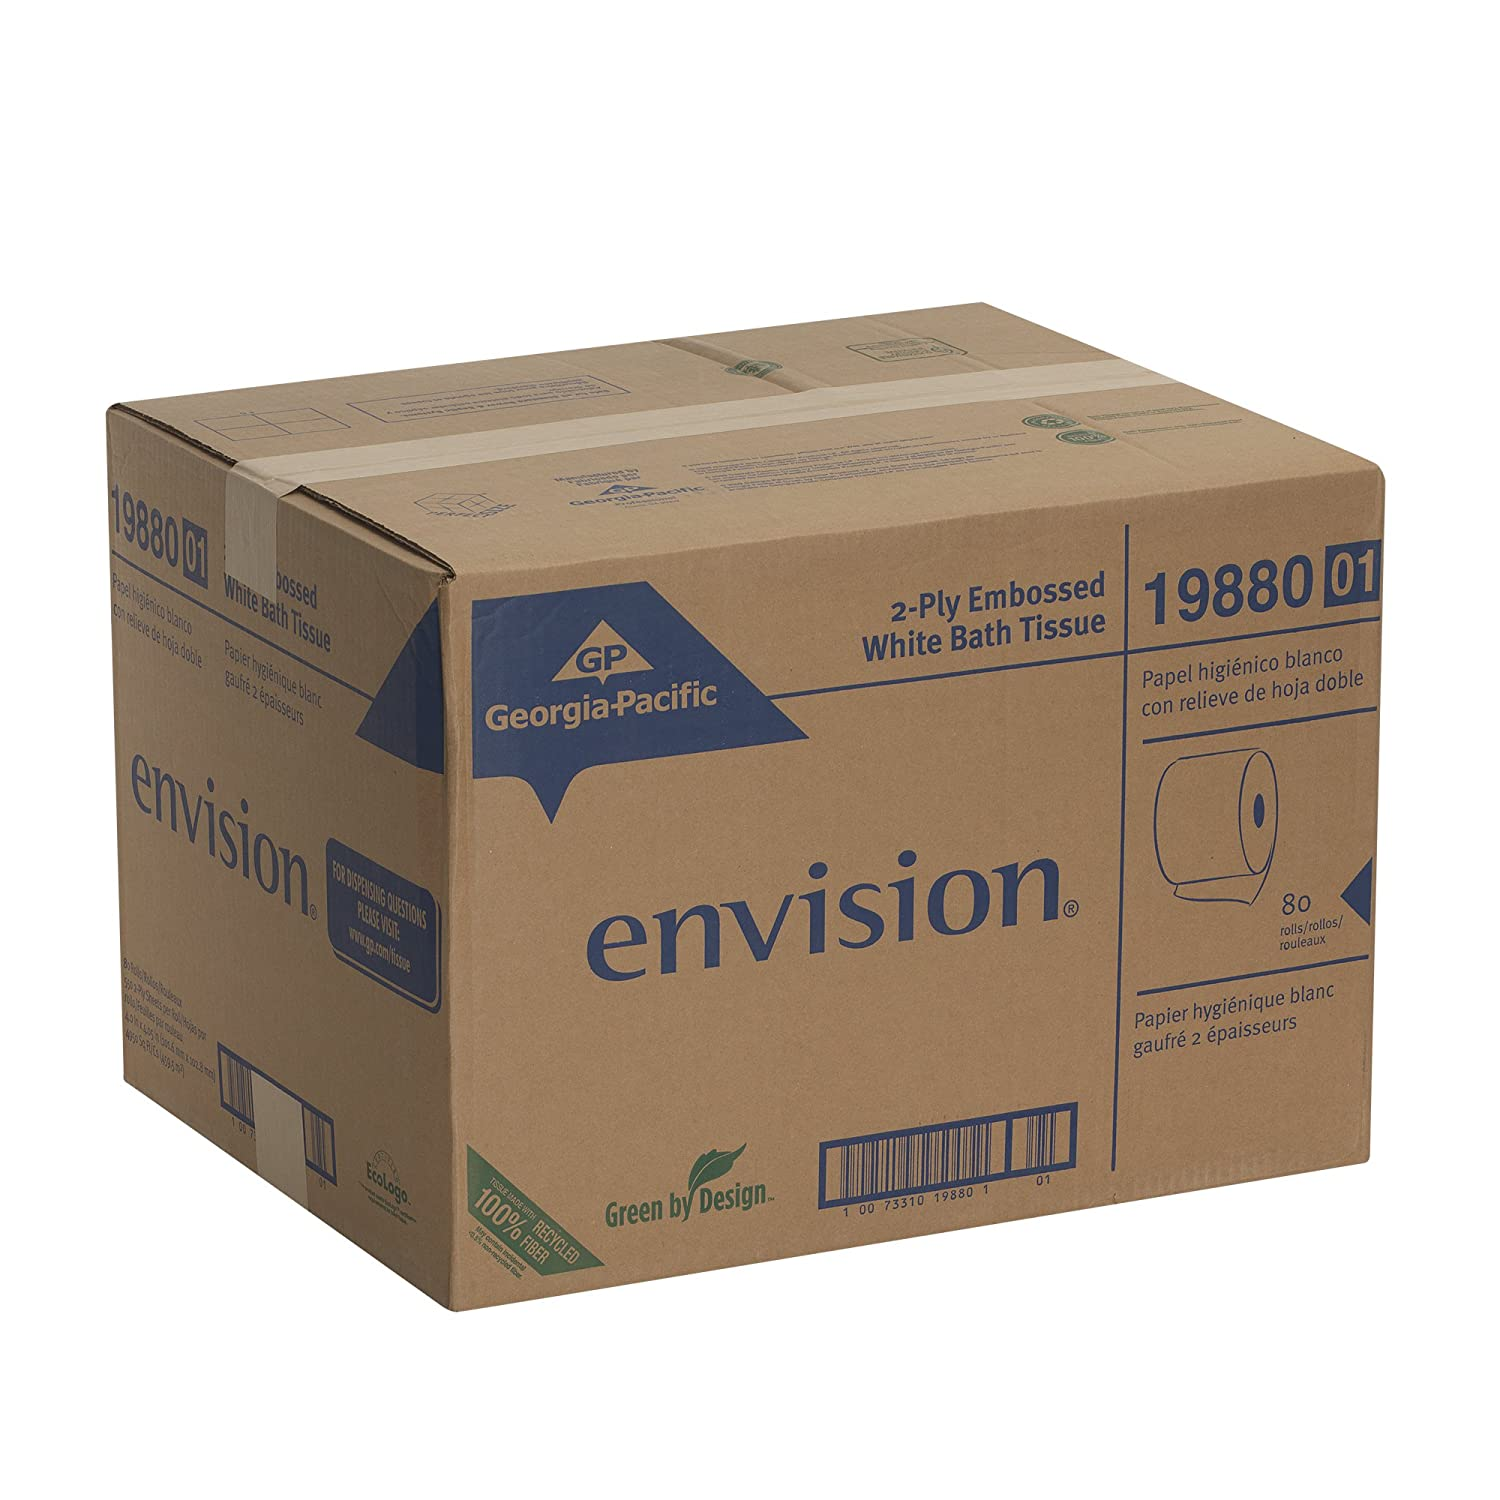 Amazon com  Georgia Pacific Envision 19880 01 White 2 Ply Embossed Bathroom  Tissue  4 05  Length x 4  Width  Case of 80 Rolls   Home Improvement. Amazon com  Georgia Pacific Envision 19880 01 White 2 Ply Embossed